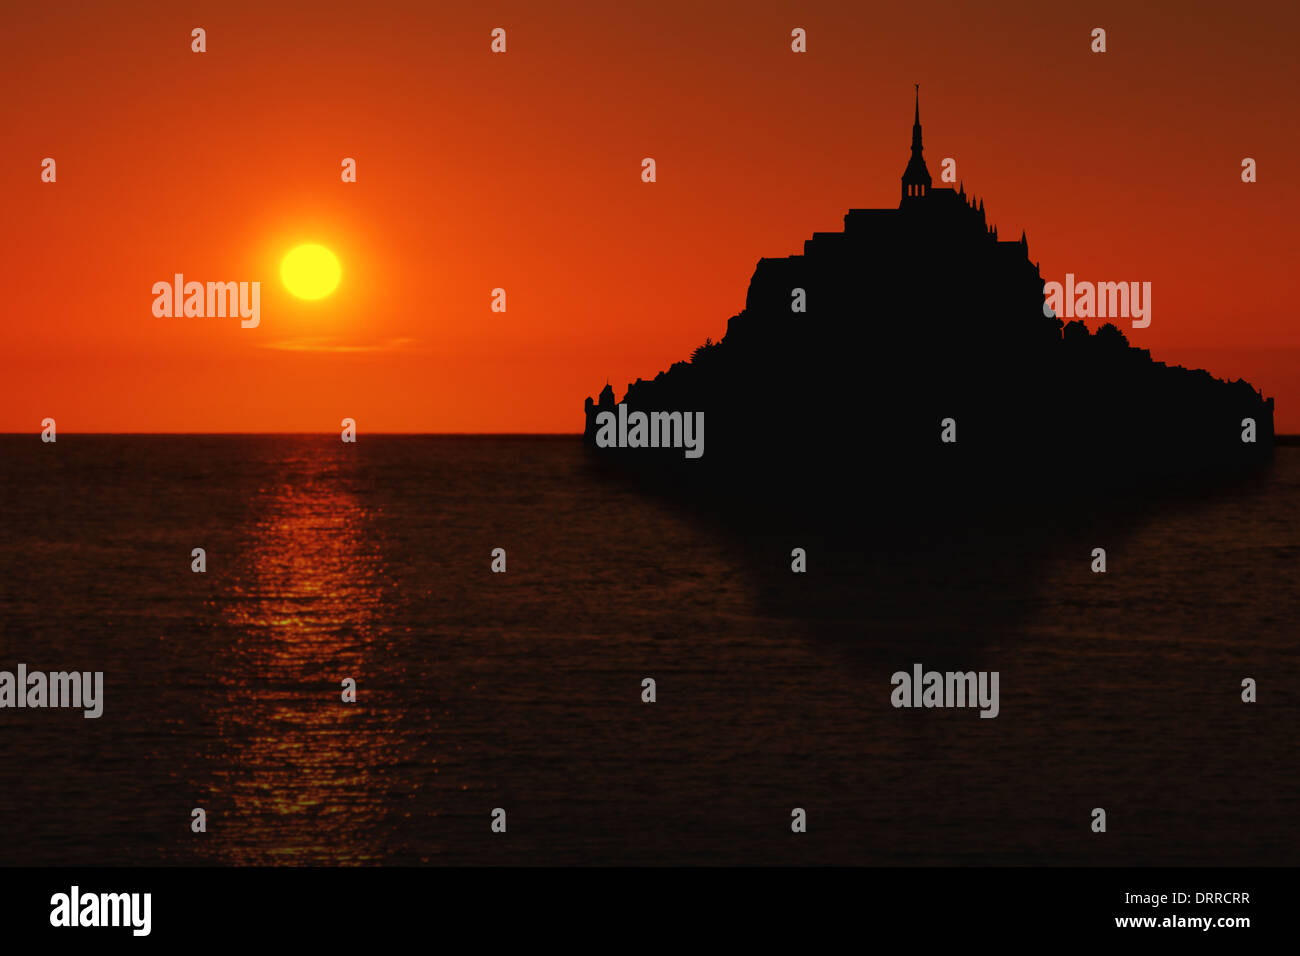 Le Mont Saint Michel silhouette with reflection in Normandy, France at sunset - Stock Image